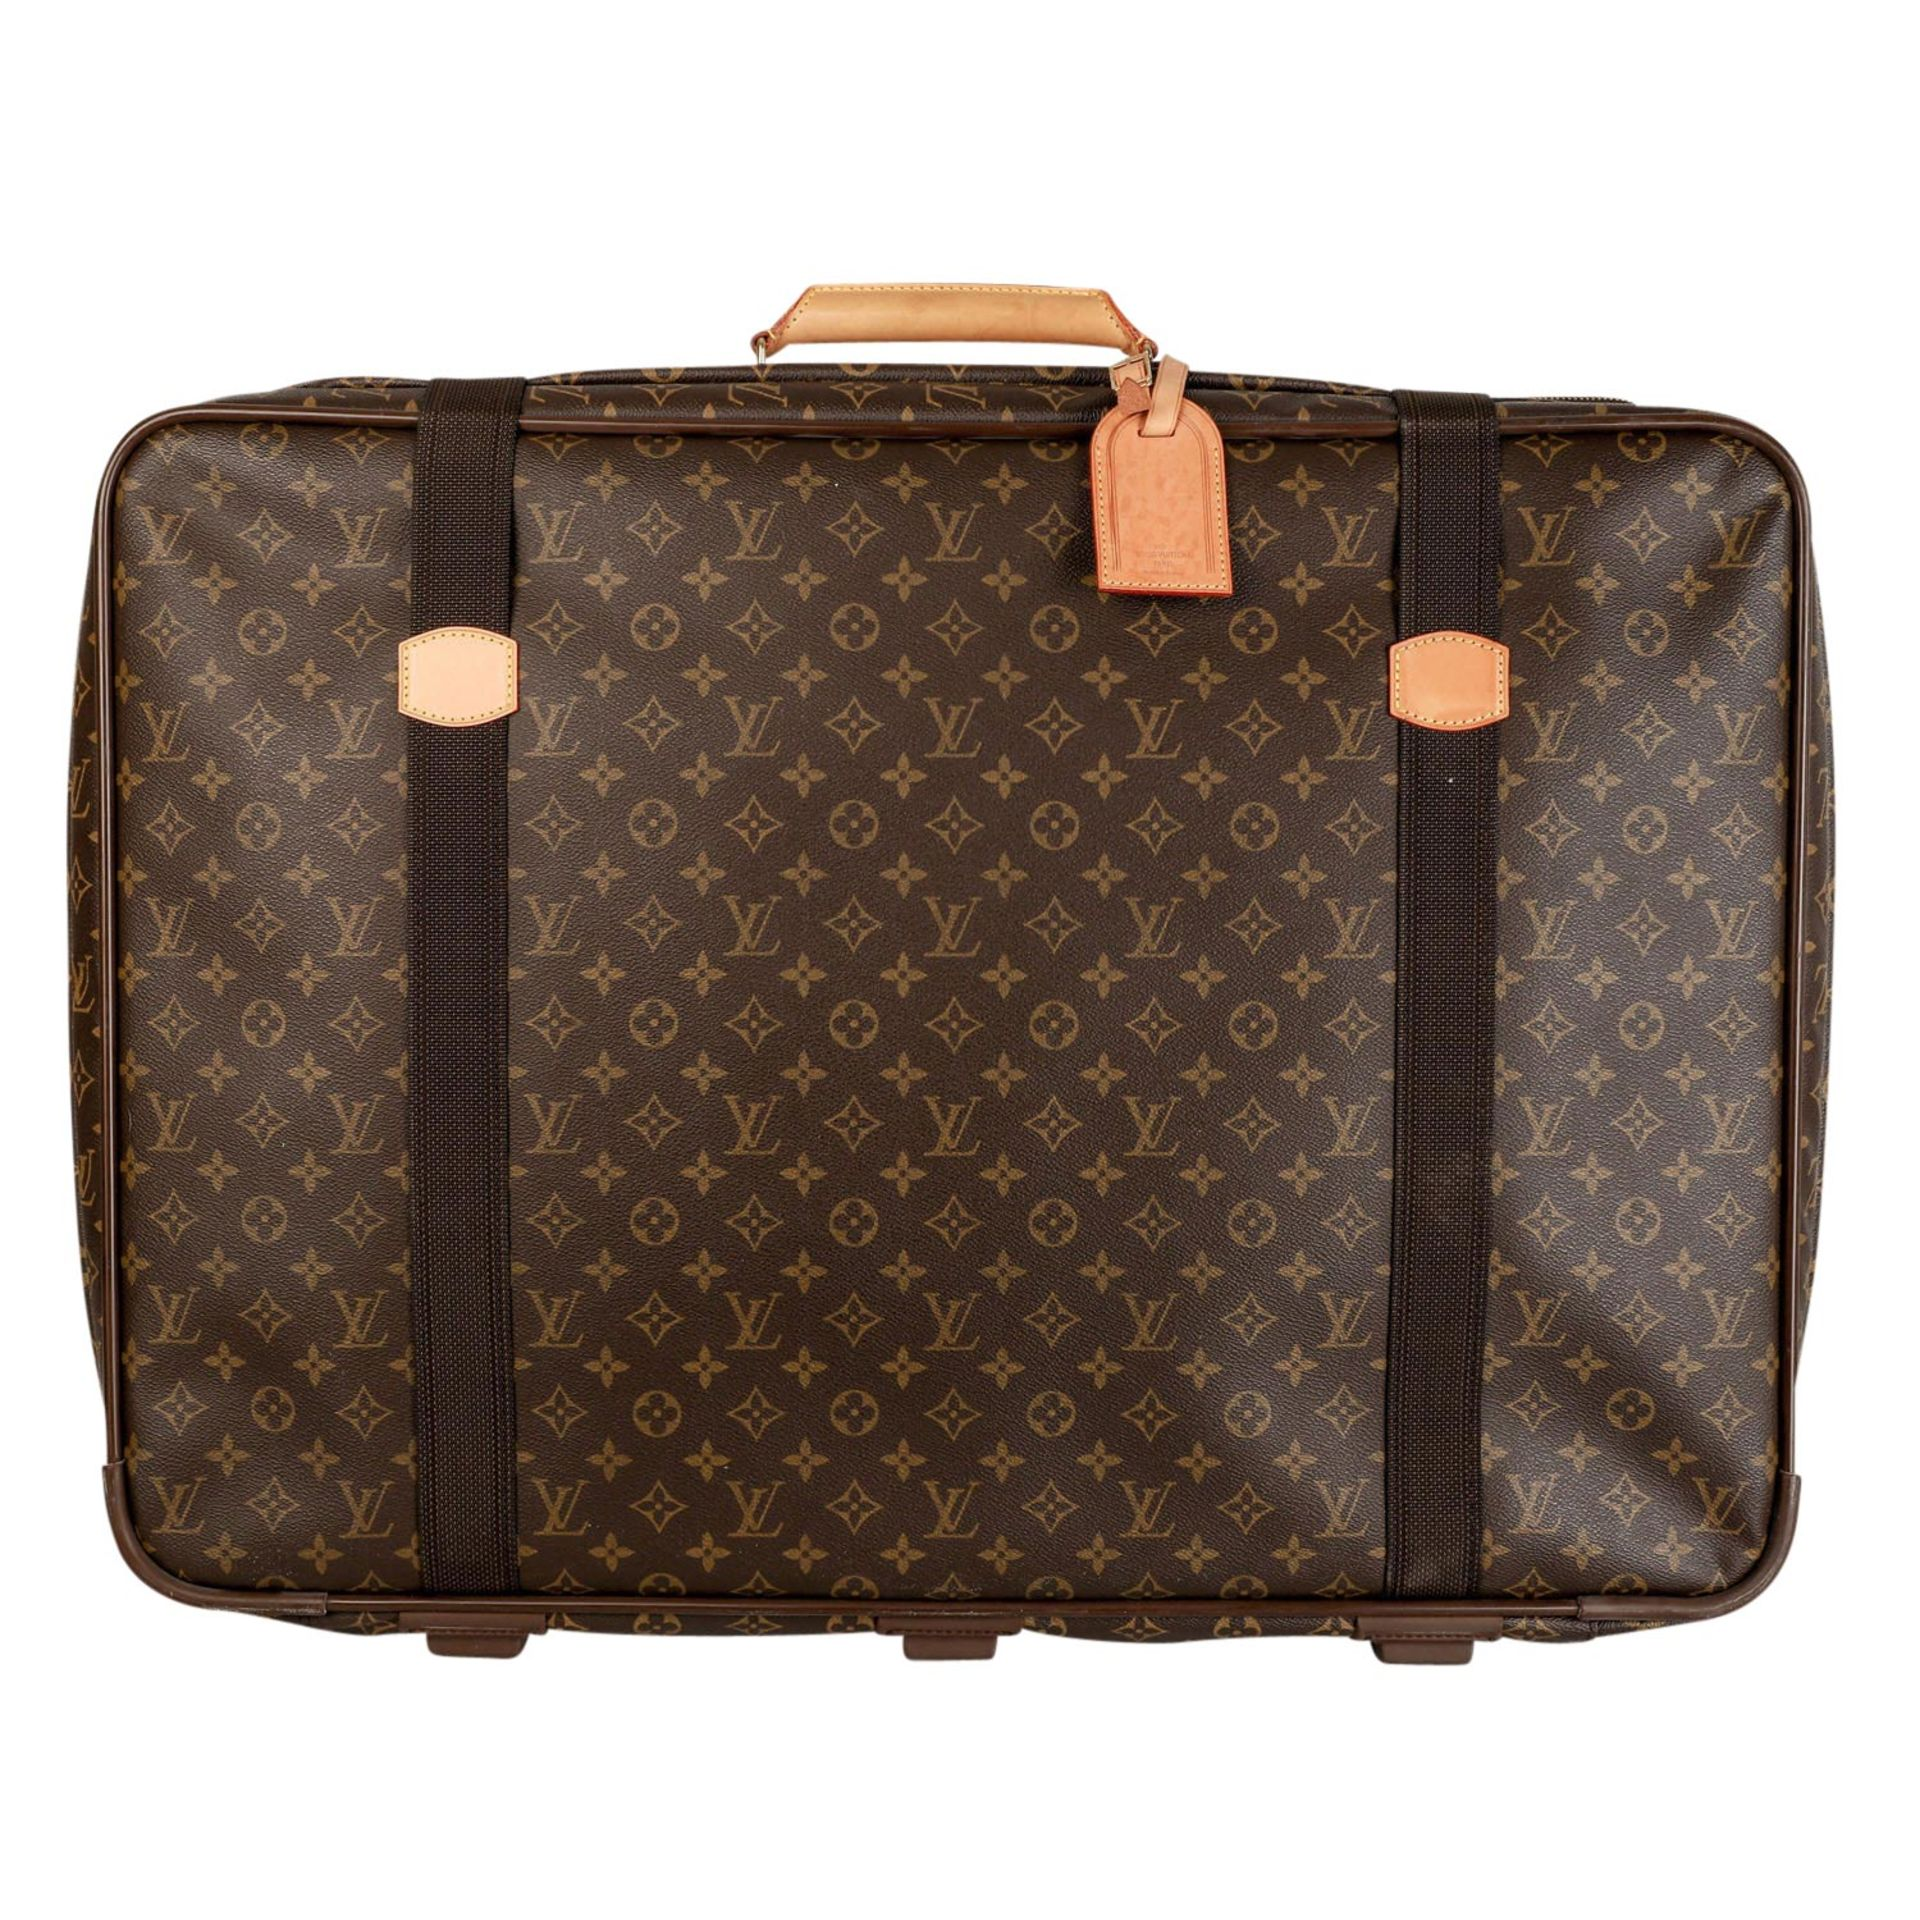 "LOUIS VUITTON Koffer ""SATELLITE"", Koll.: 1996.Monogram Canvas Serie mit Leder-Details und"